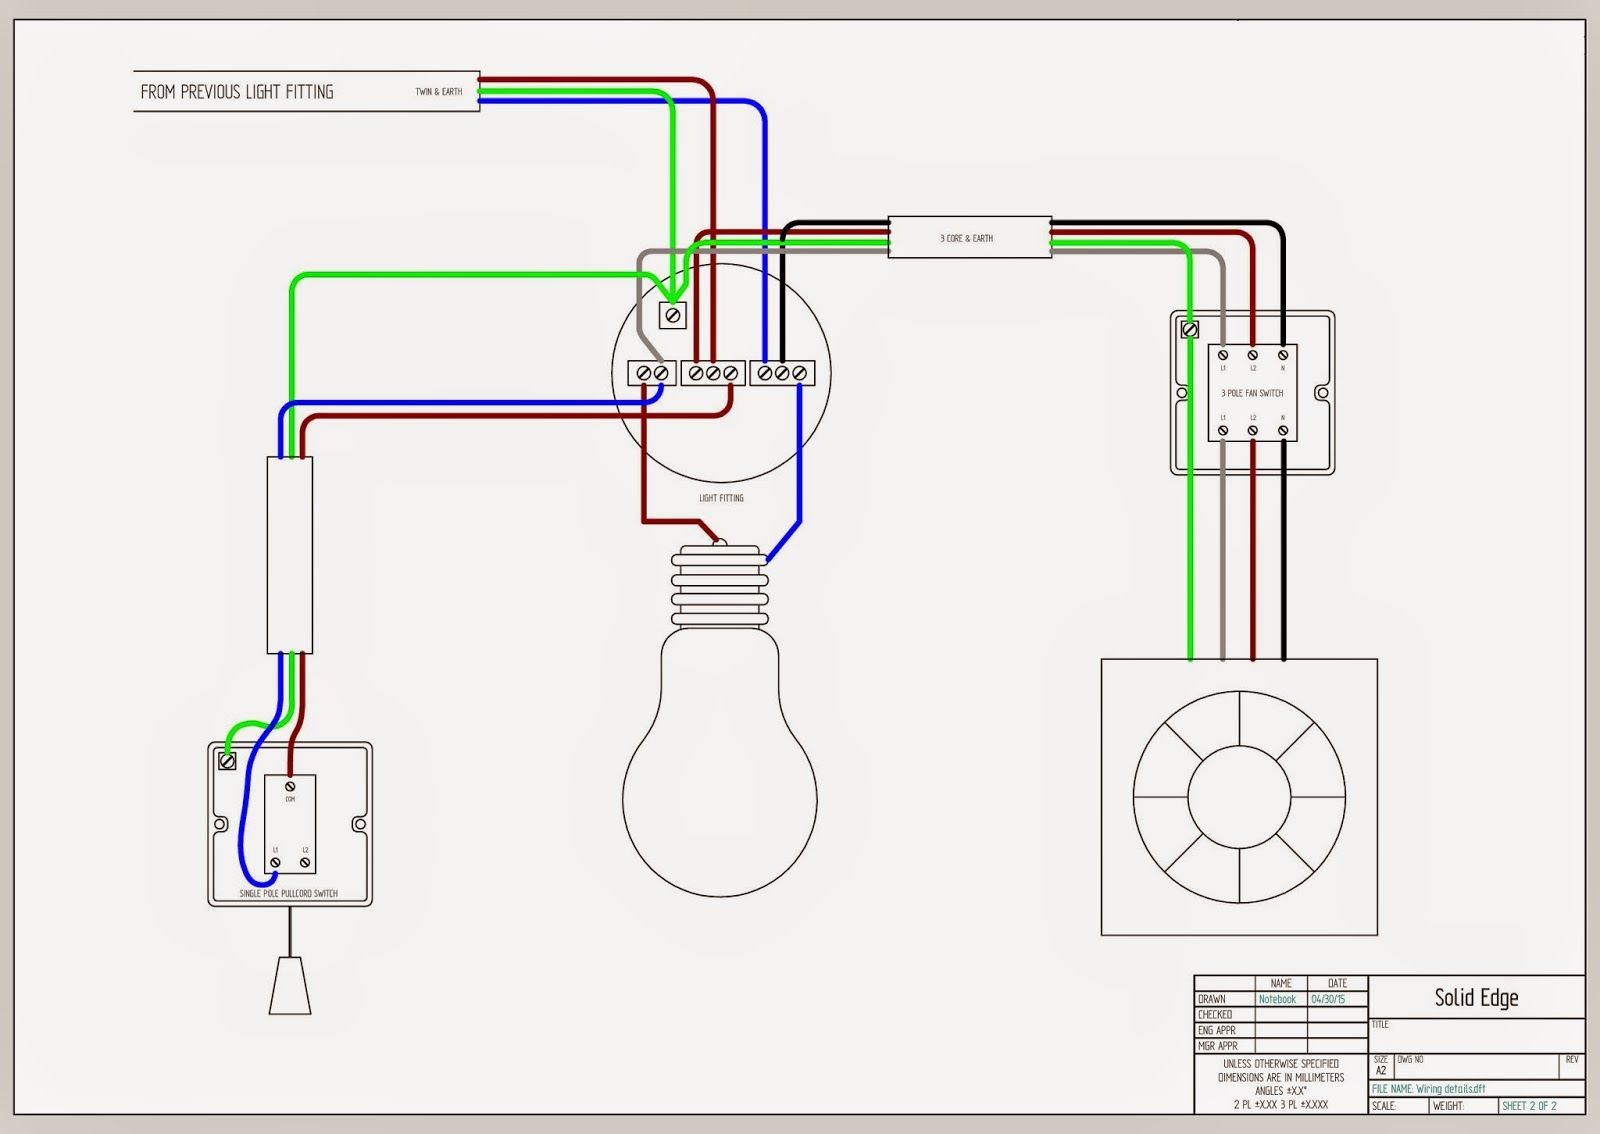 Marvelous Wiring Diagram Bathroom Fan And Light Wiring Diagram K9 Download Free Architecture Designs Viewormadebymaigaardcom